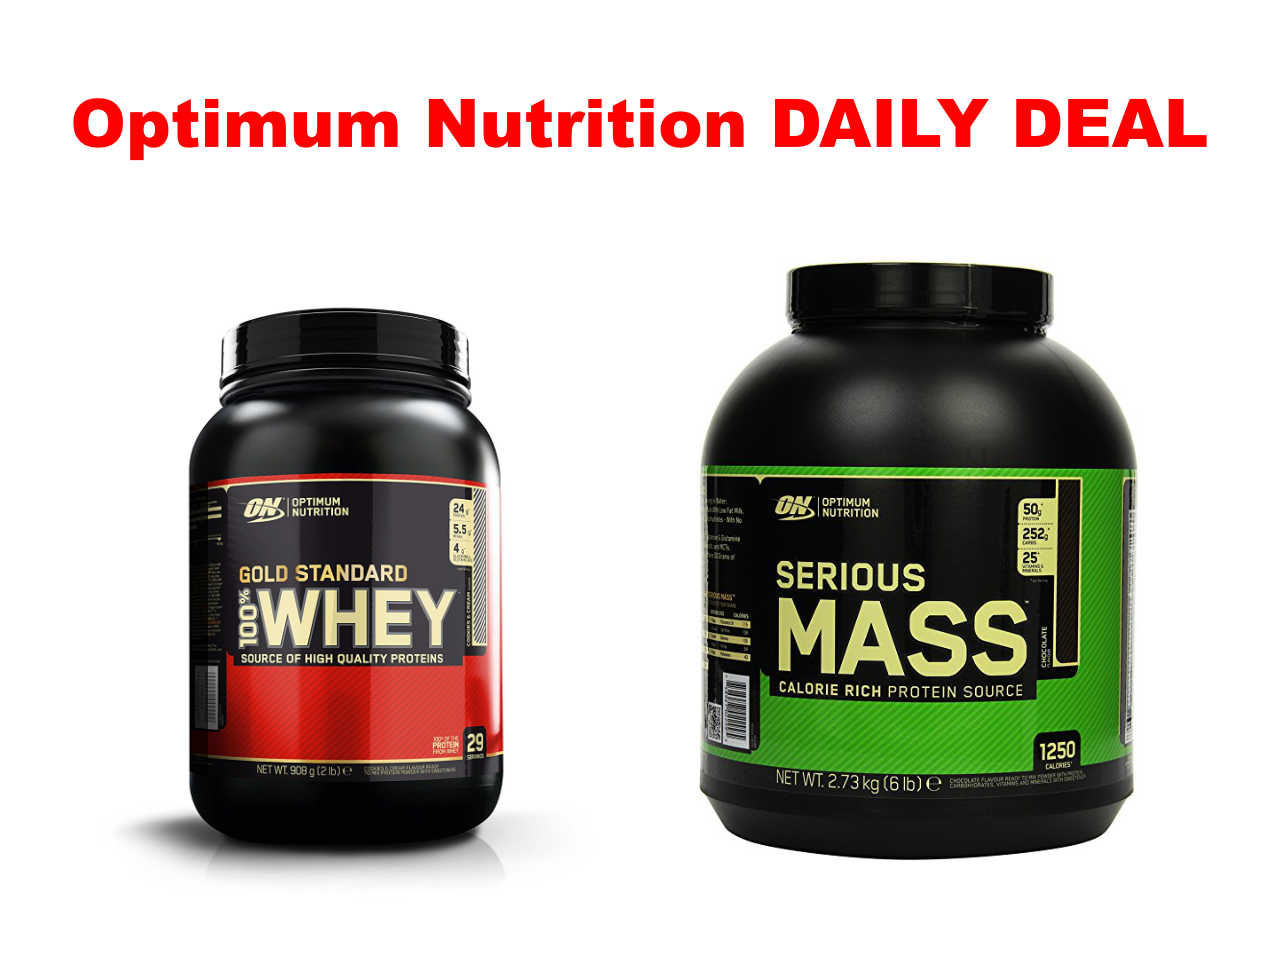 About Mass Nutrition. There are total 33 active Mass Nutrition promo codes and deals listed below, including 1 Coupon codes and 32 deals. The Mass Nutrition vouchers are updated on November 5,